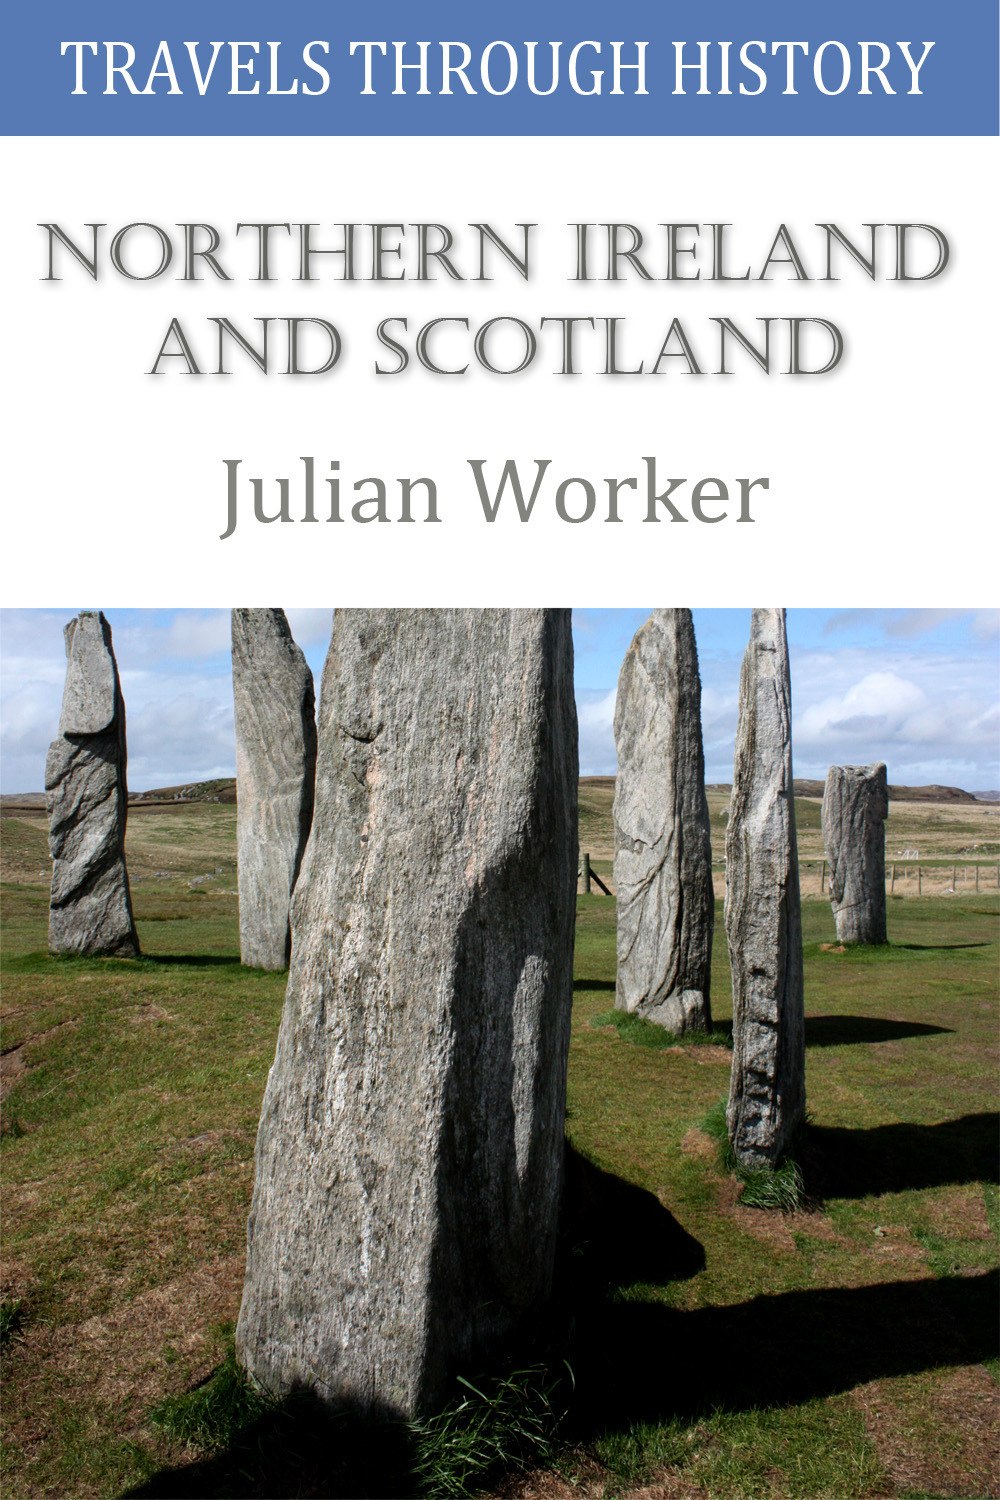 Worker, Julian - Travels through History - Northern Ireland and Scotland, ebook